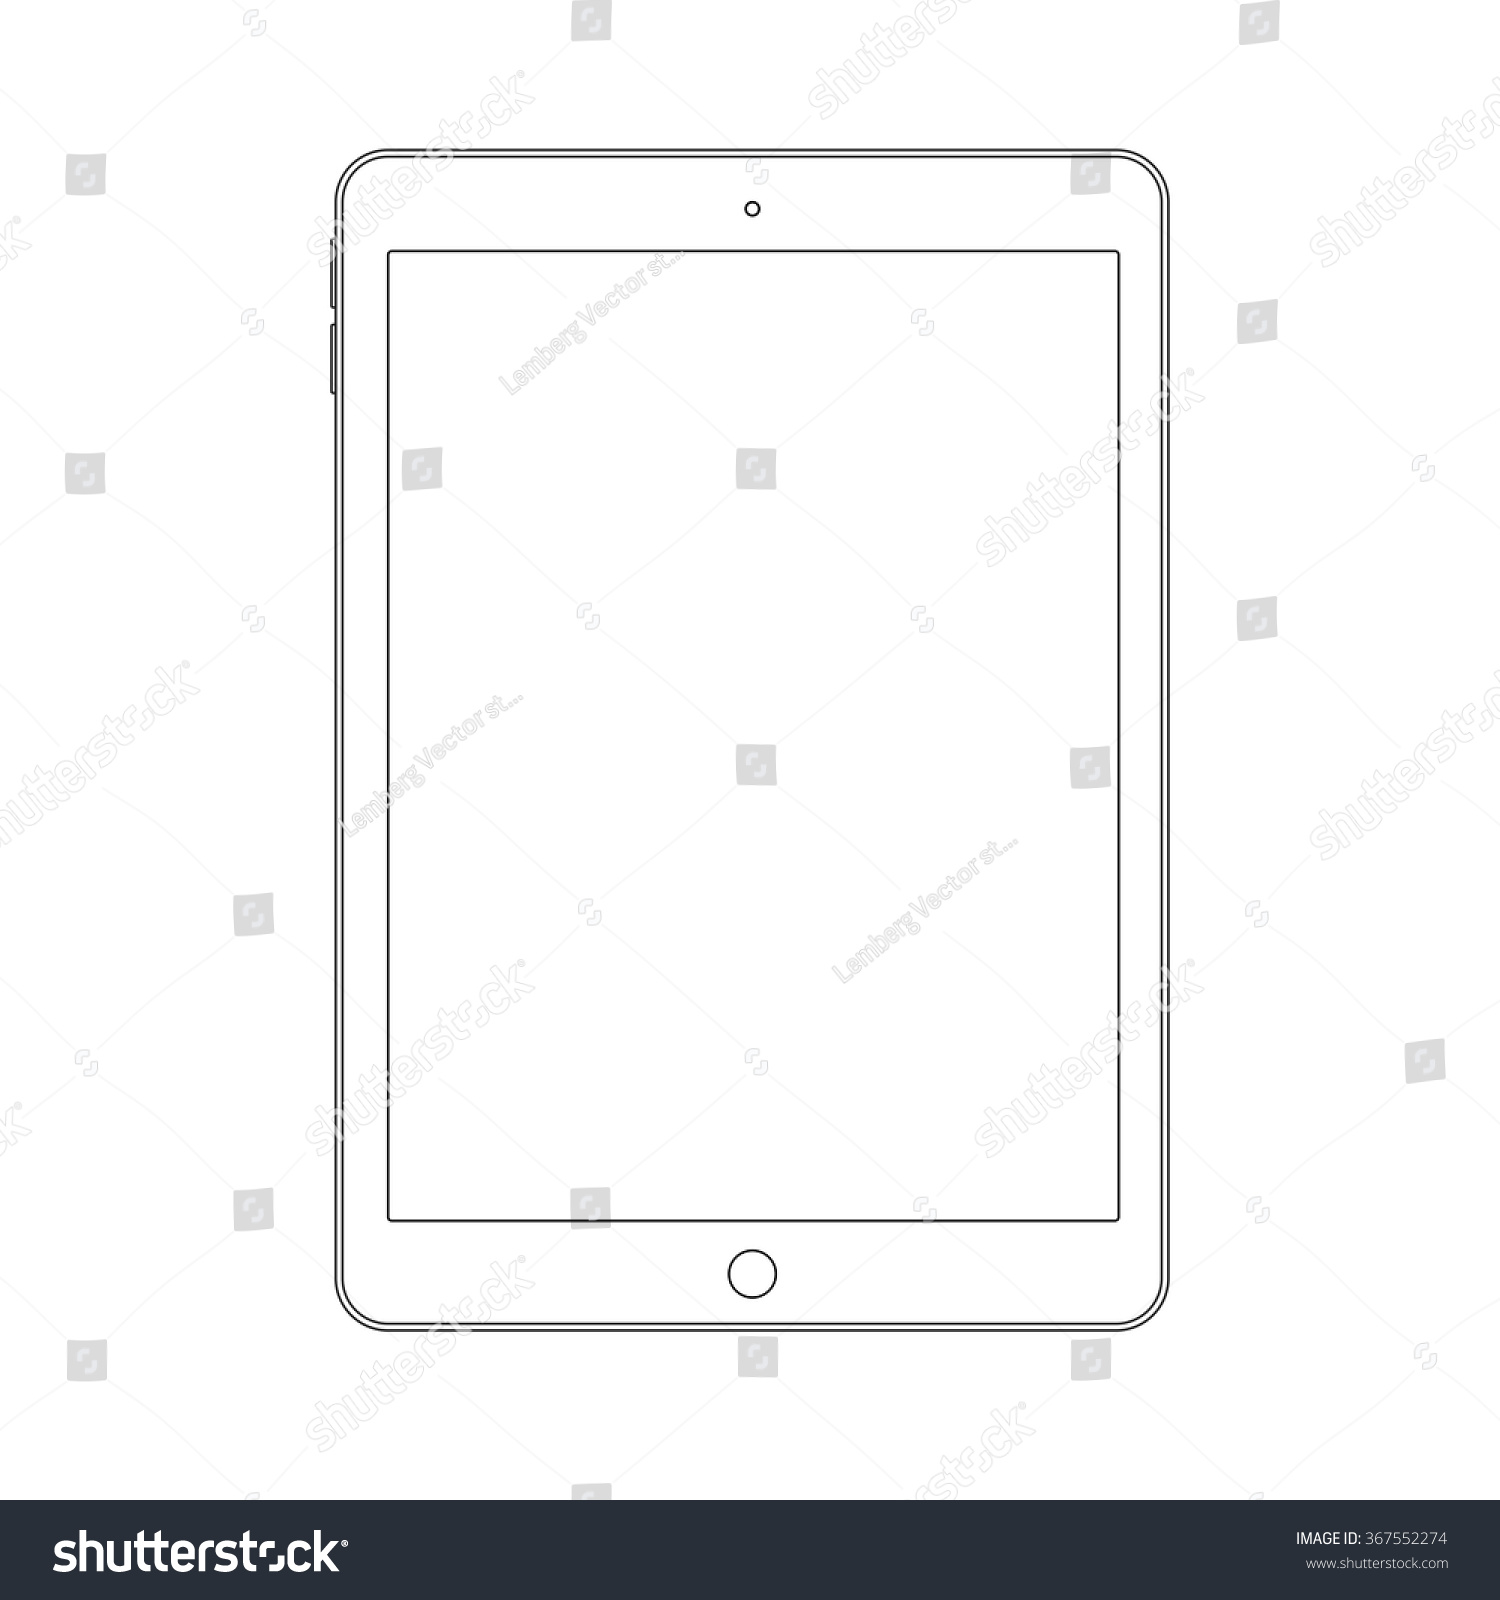 Drawing Lines With Tablet : Outline drawing tablet similar ipad air stock vector